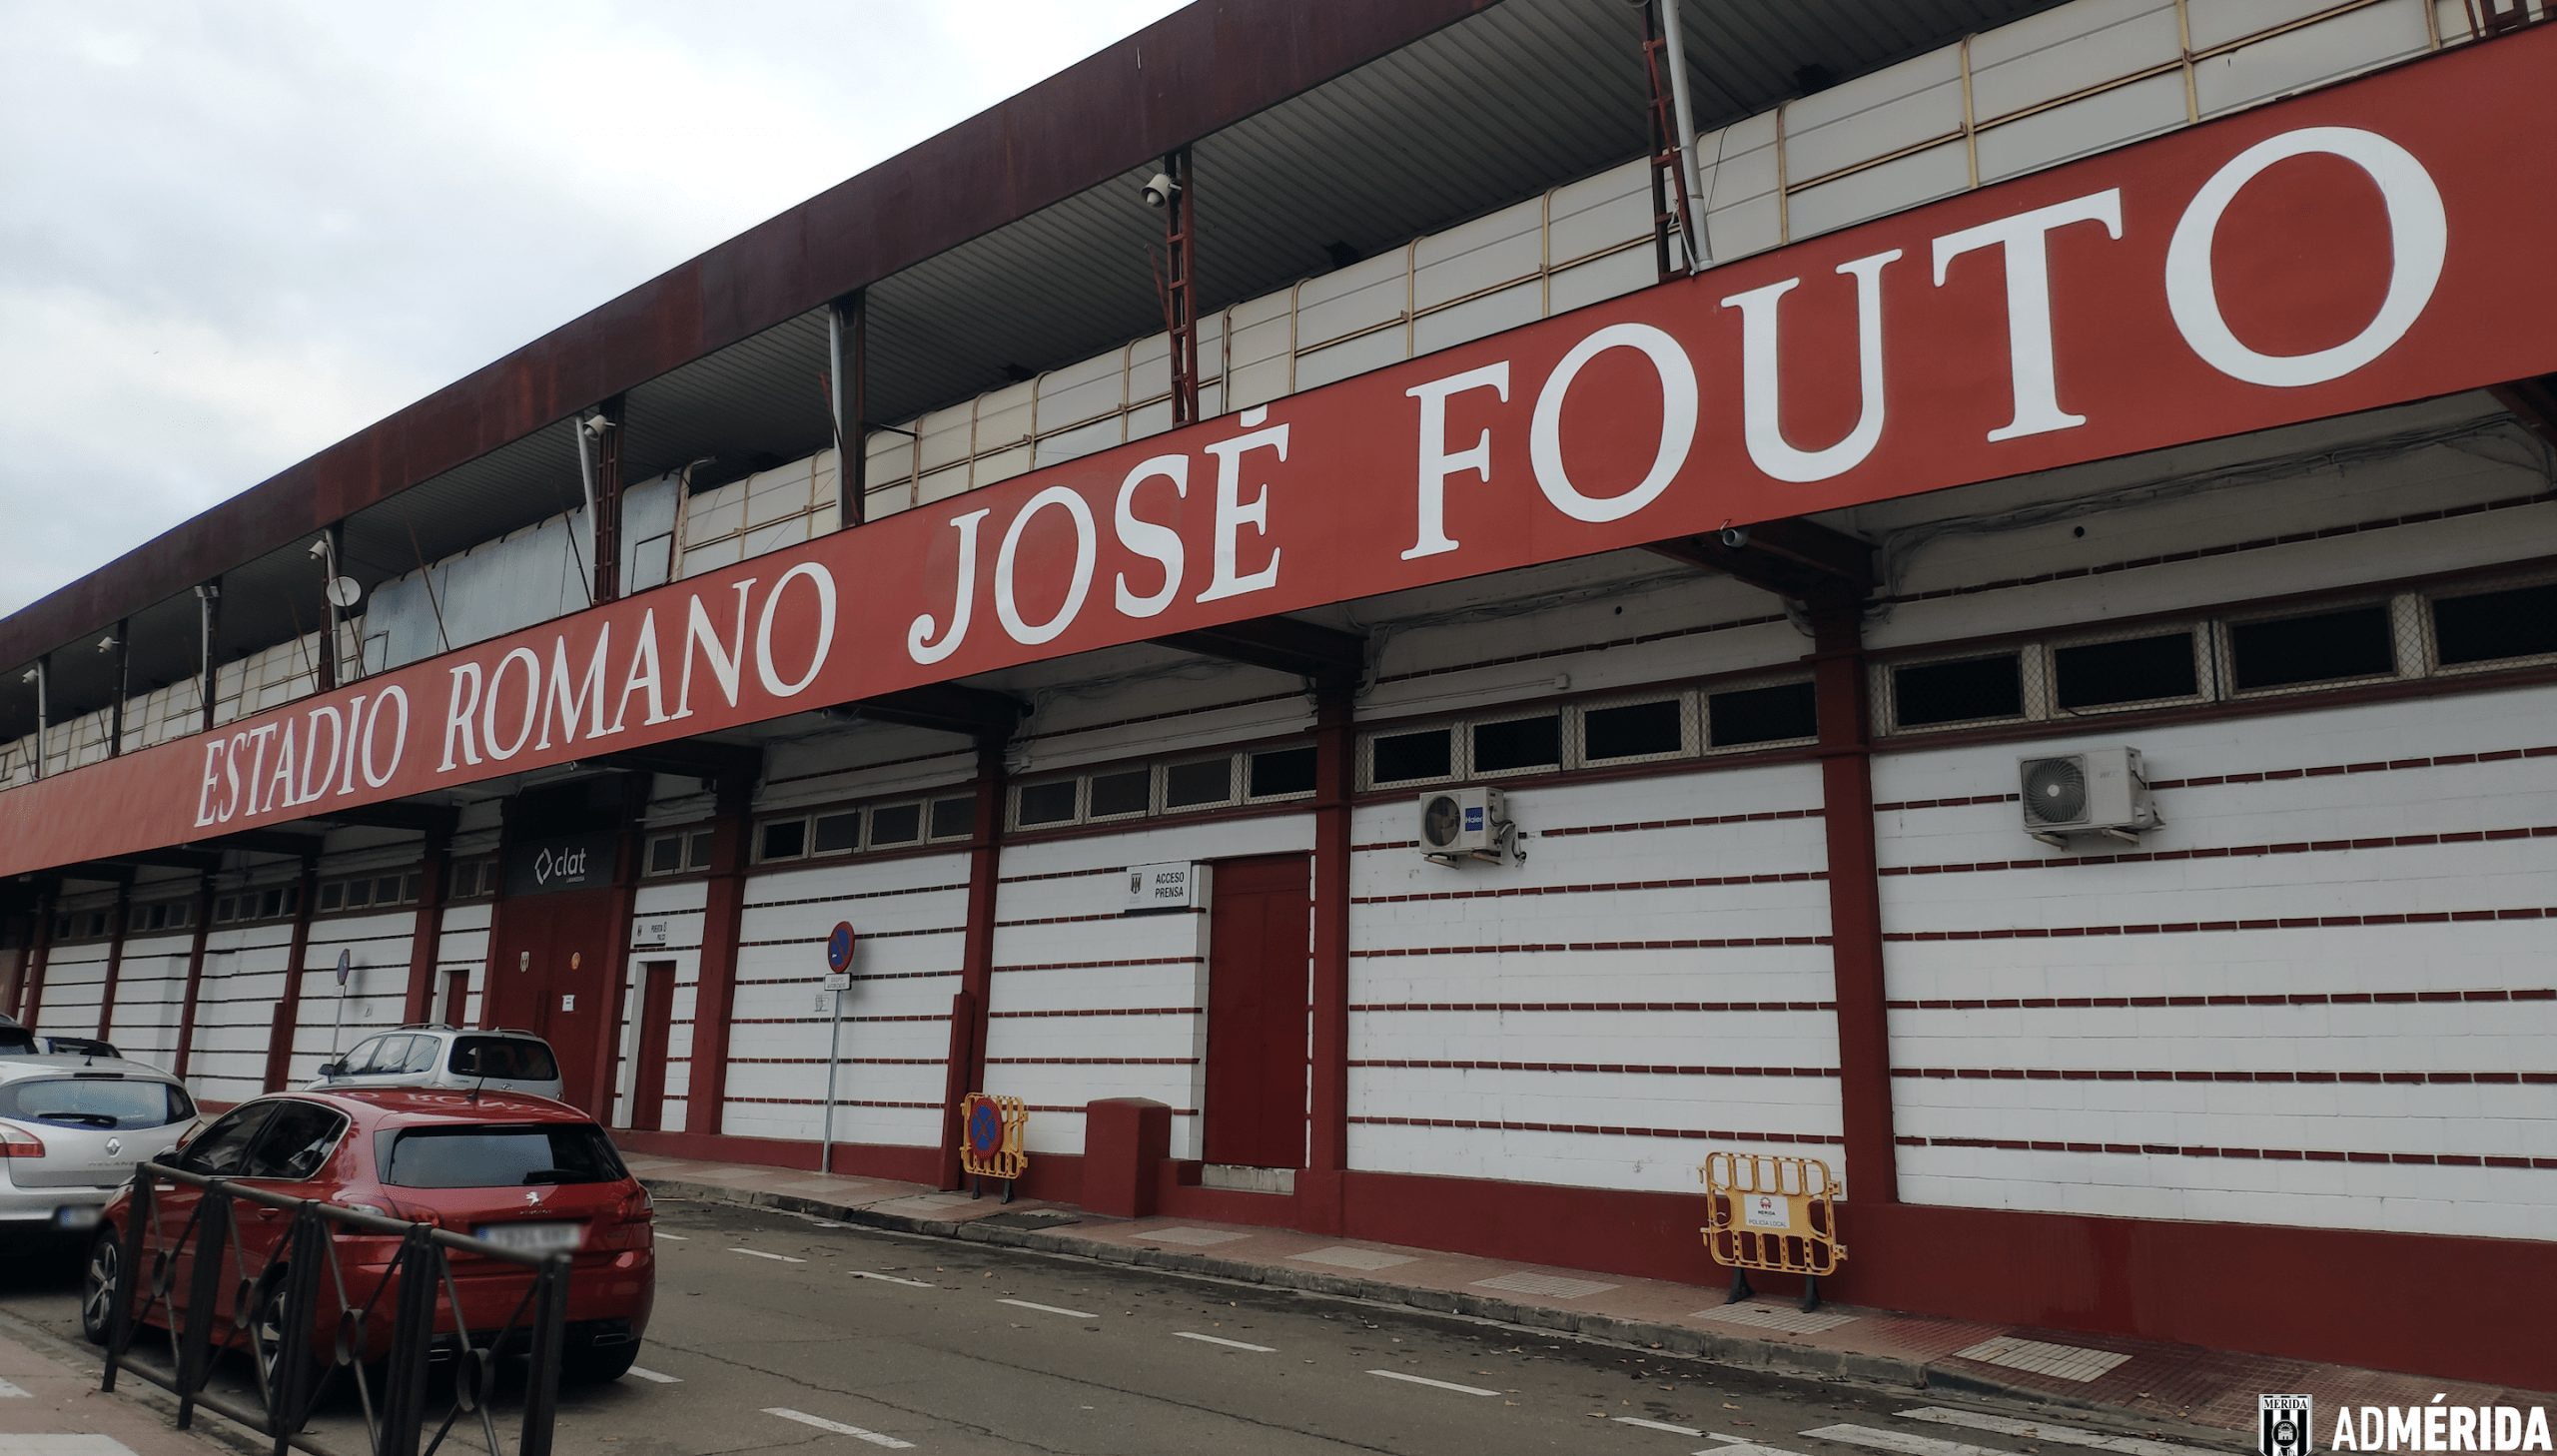 Estadio José Fouto